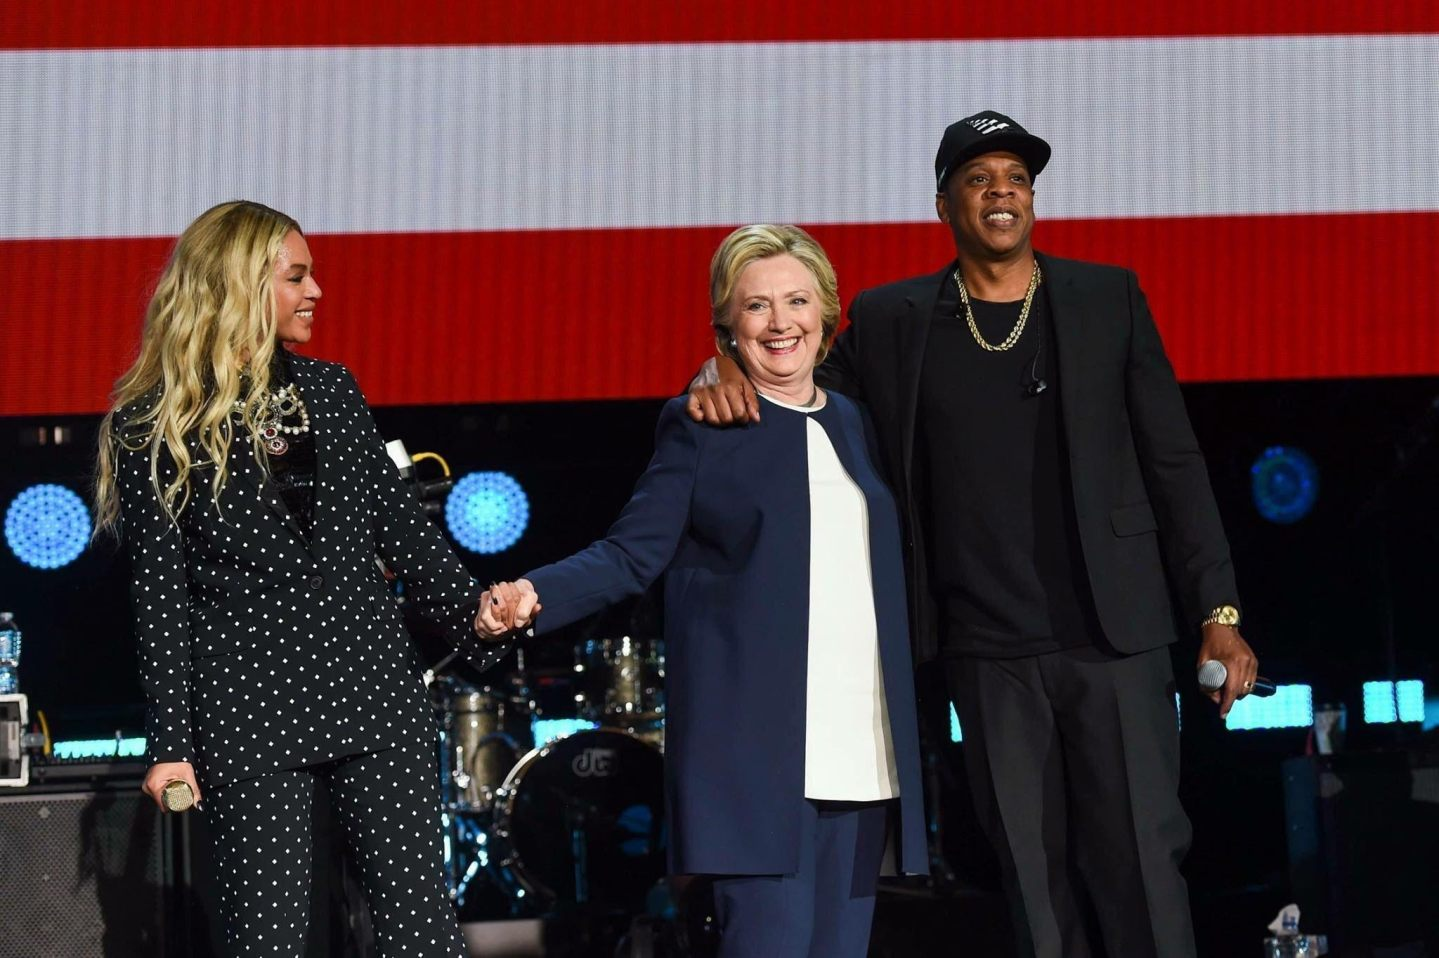 Beyonce and Jay-Z Campaign for Hillary Clinton in Cleveland